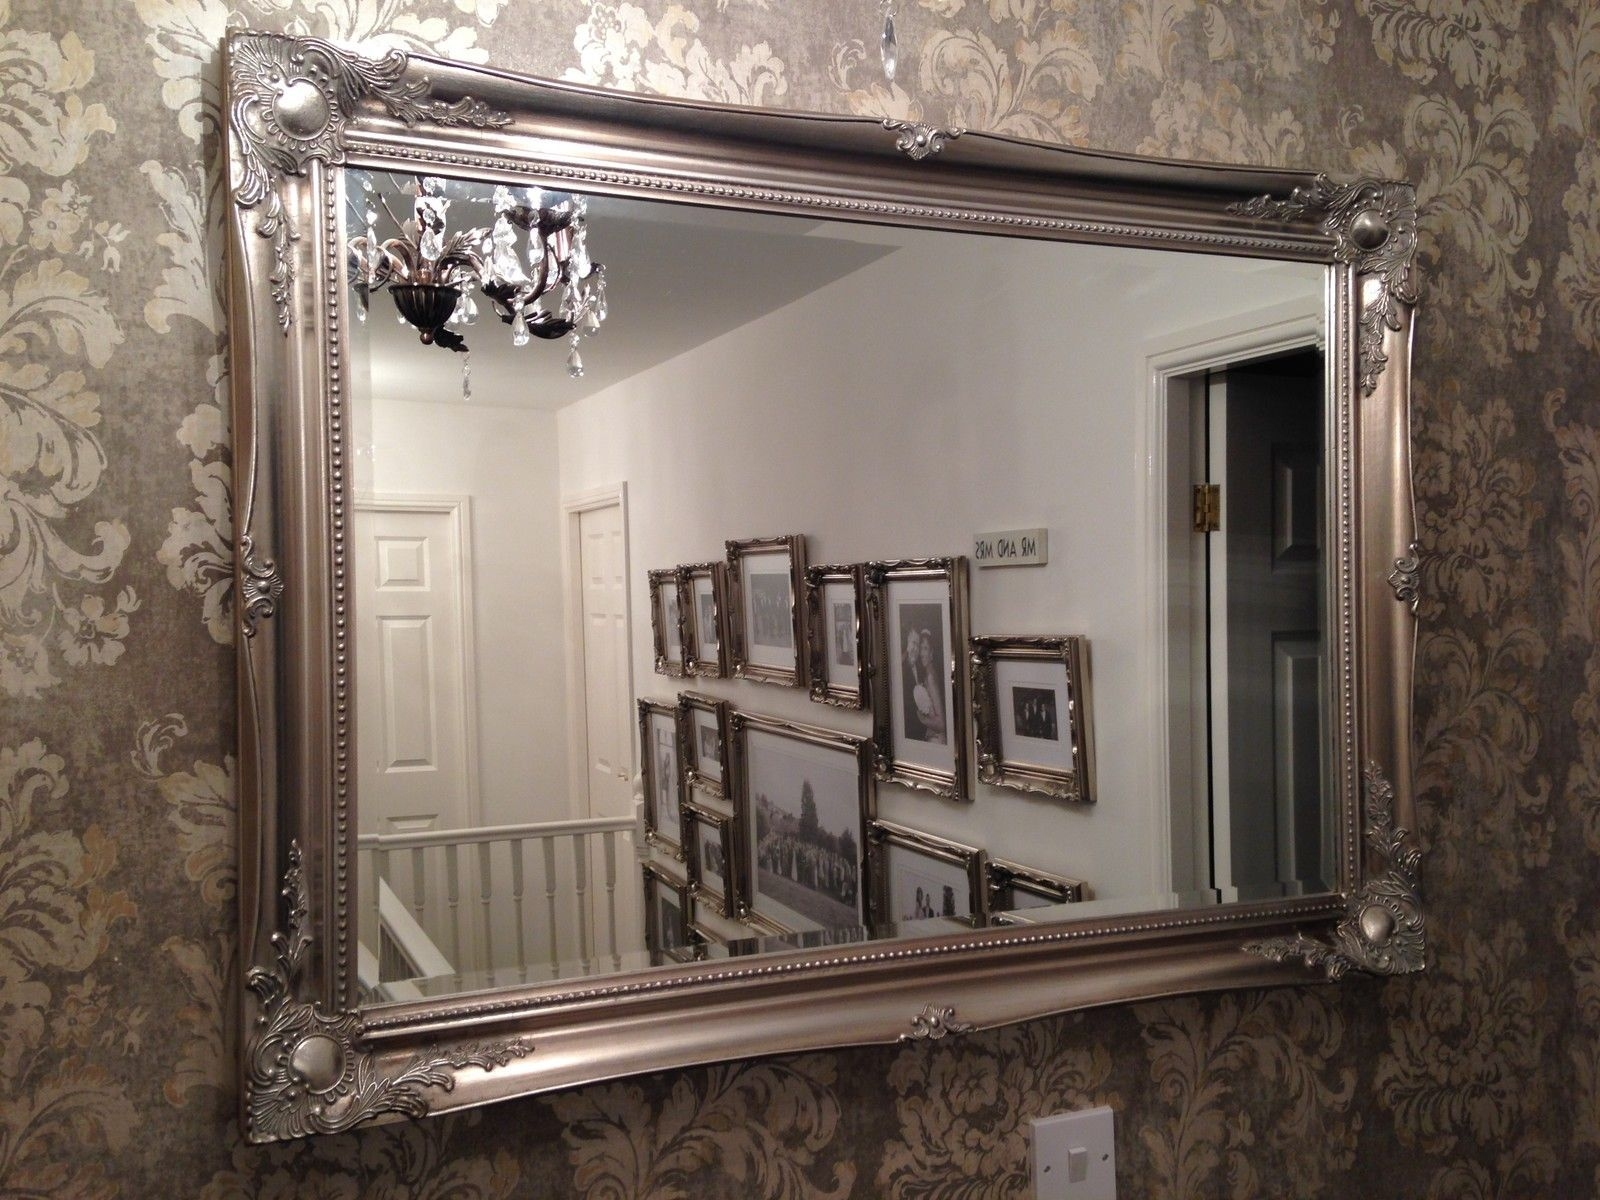 Large Antique Silver Shab Chic Ornate Decorative Over Mantle Within Huge Ornate Mirror (Image 10 of 15)